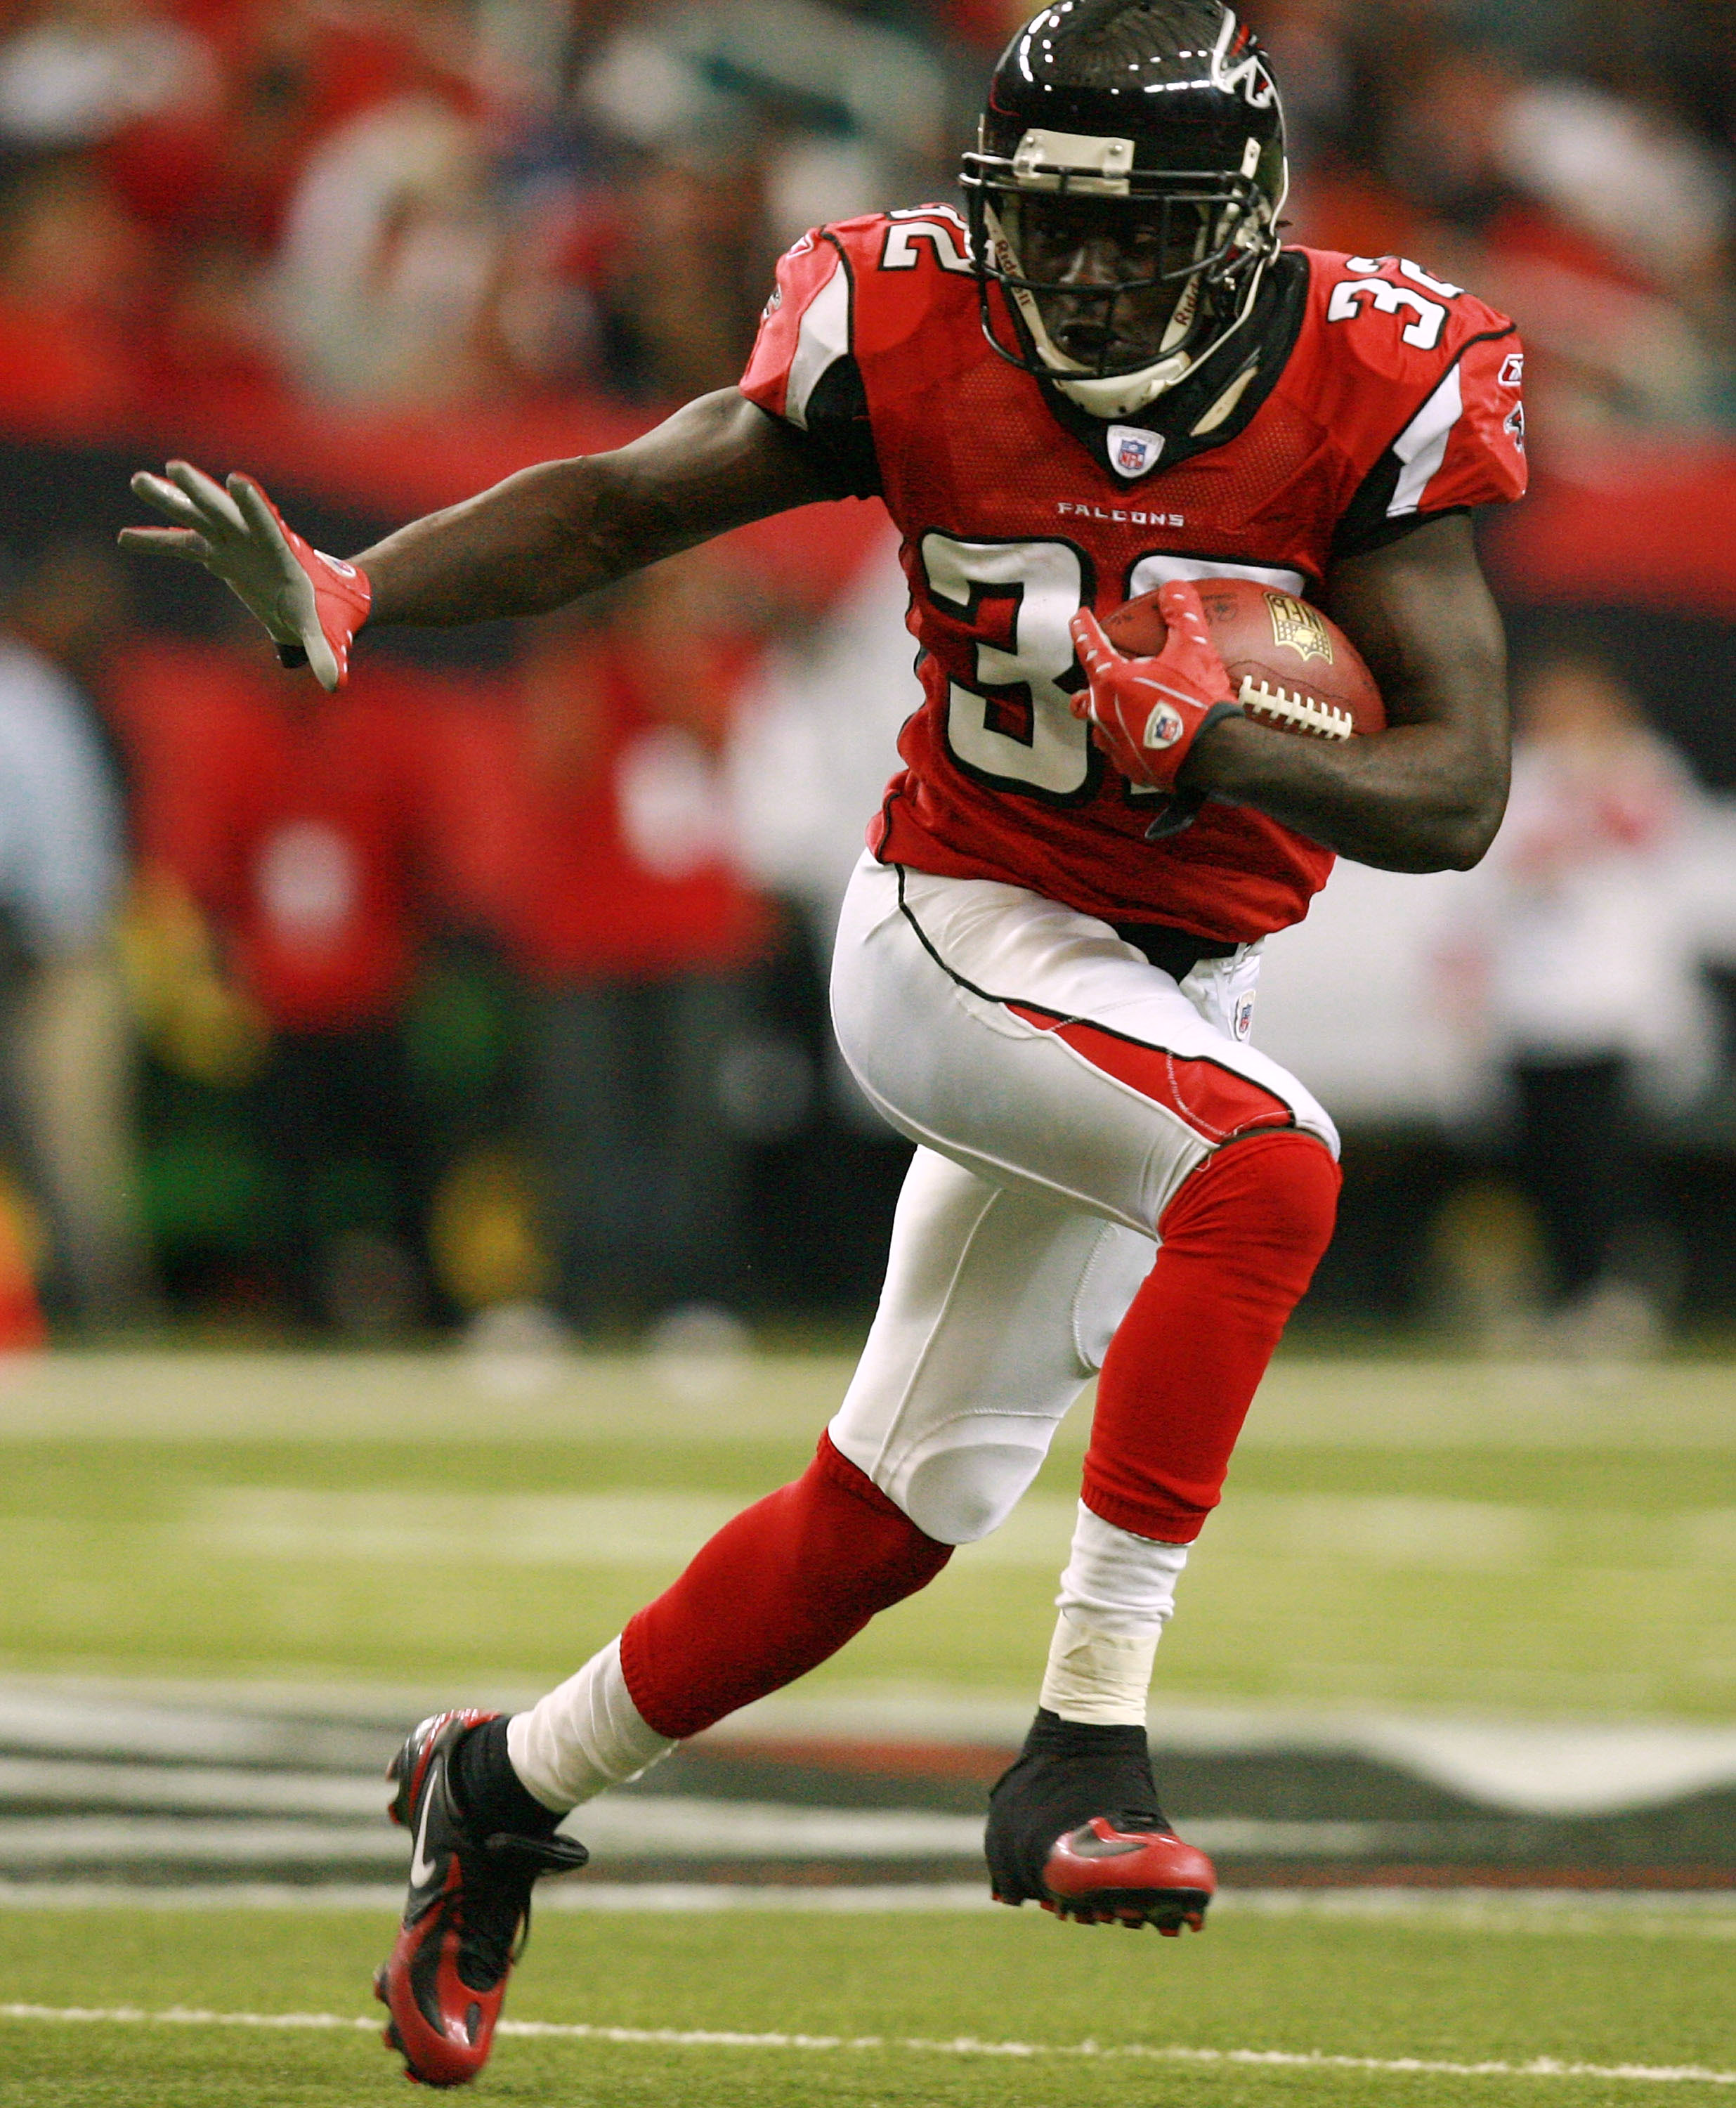 Falcon Jerious Norwood hopes to get more touches like this one on Sunday.